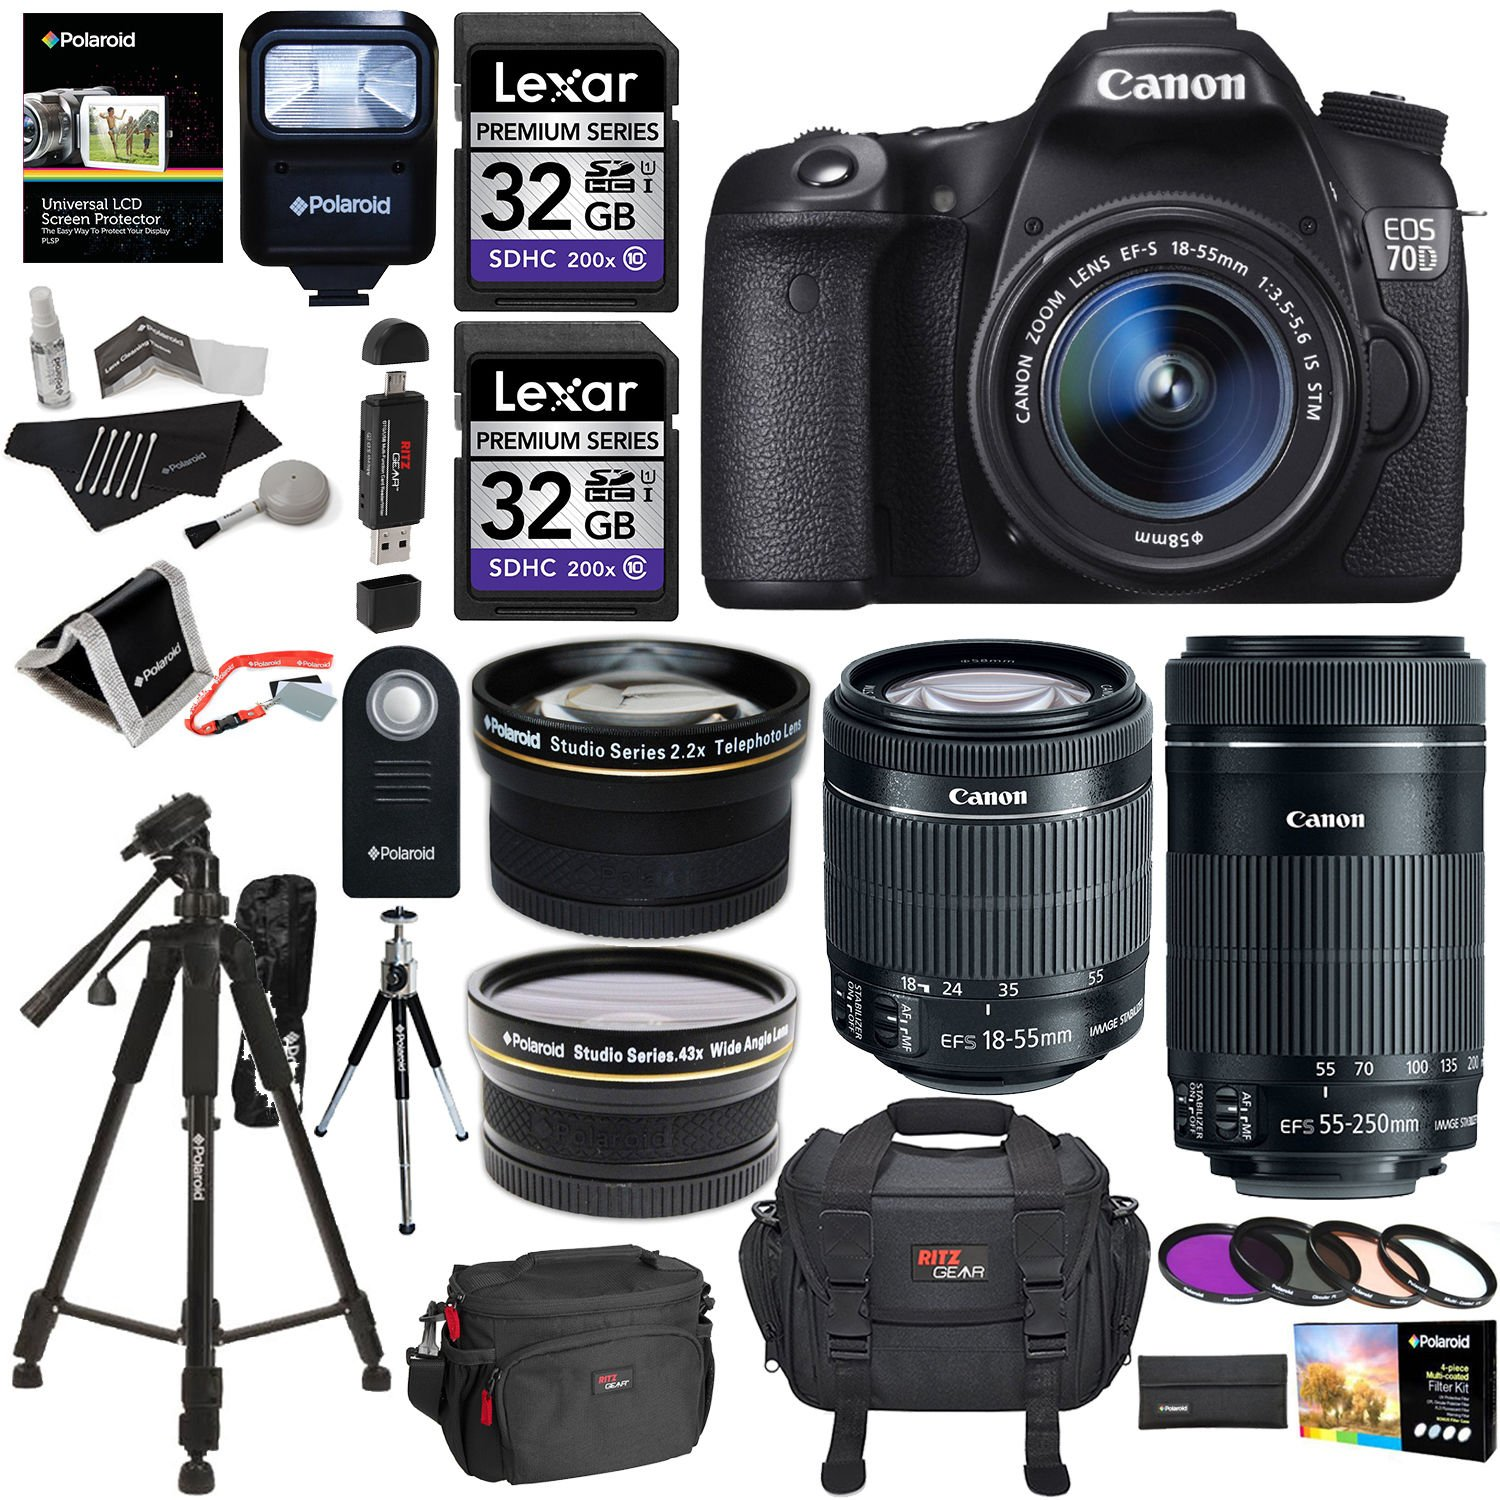 Amazon.com : Canon EOS 70D 20.2 MP AF Full HD 1080p DSLR Camera Bundle with EF-S 18-55mm f/3.5-5.6 IS STM Lens, 55-250mm Image Stabilizer Zoom Lens and Accessory Kit (20 Items)